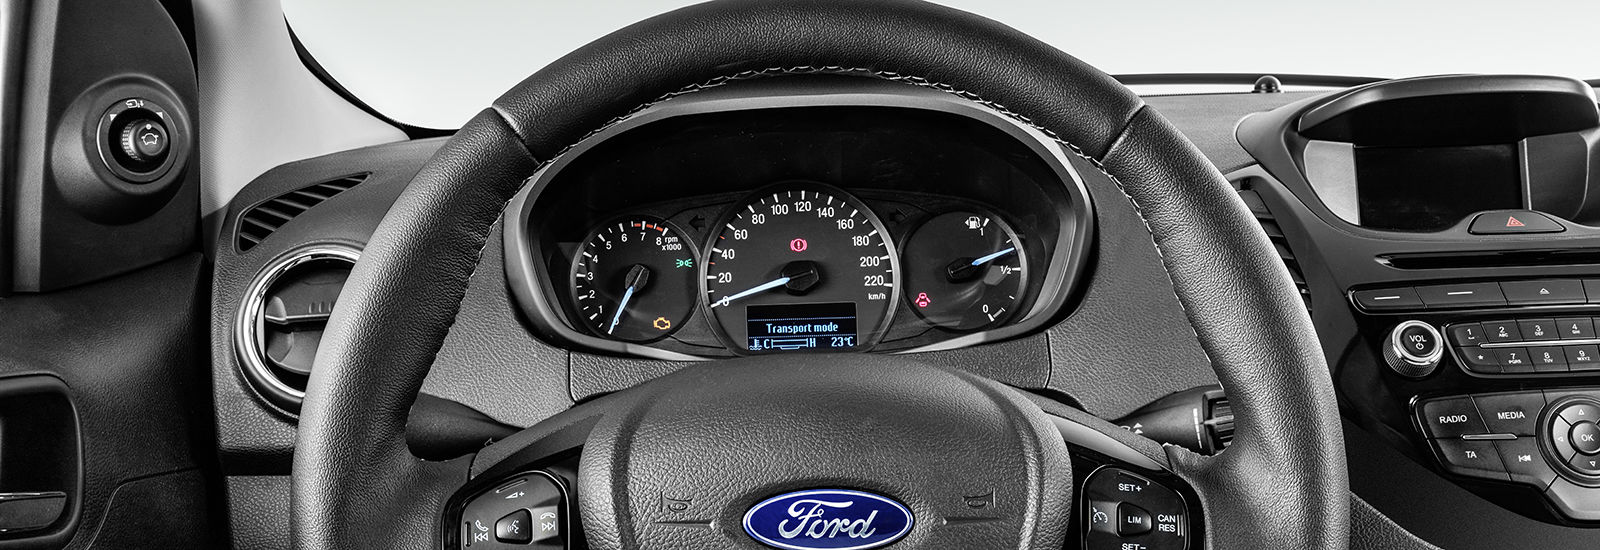 Ford Ka Interior Dimensions And Boot Space